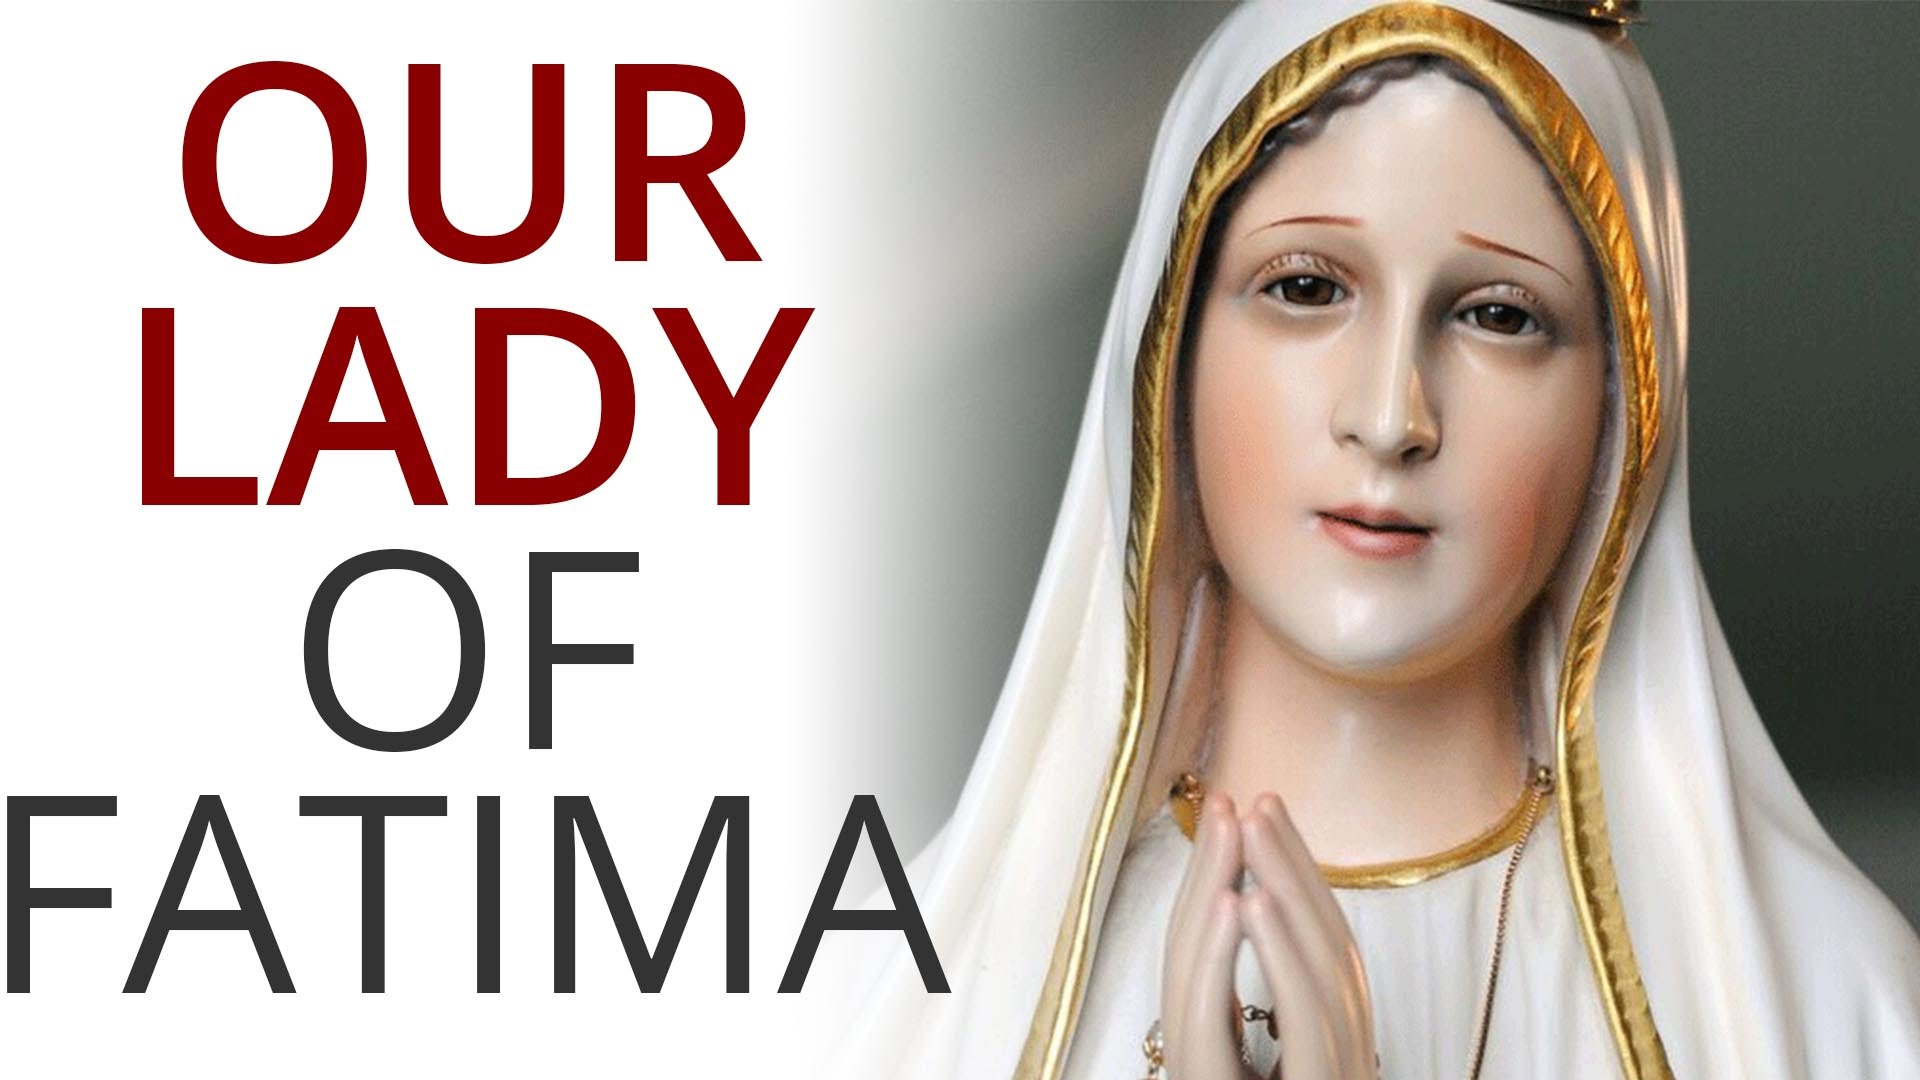 Our Lady Of Fatima Image To Visit Davao City Davao